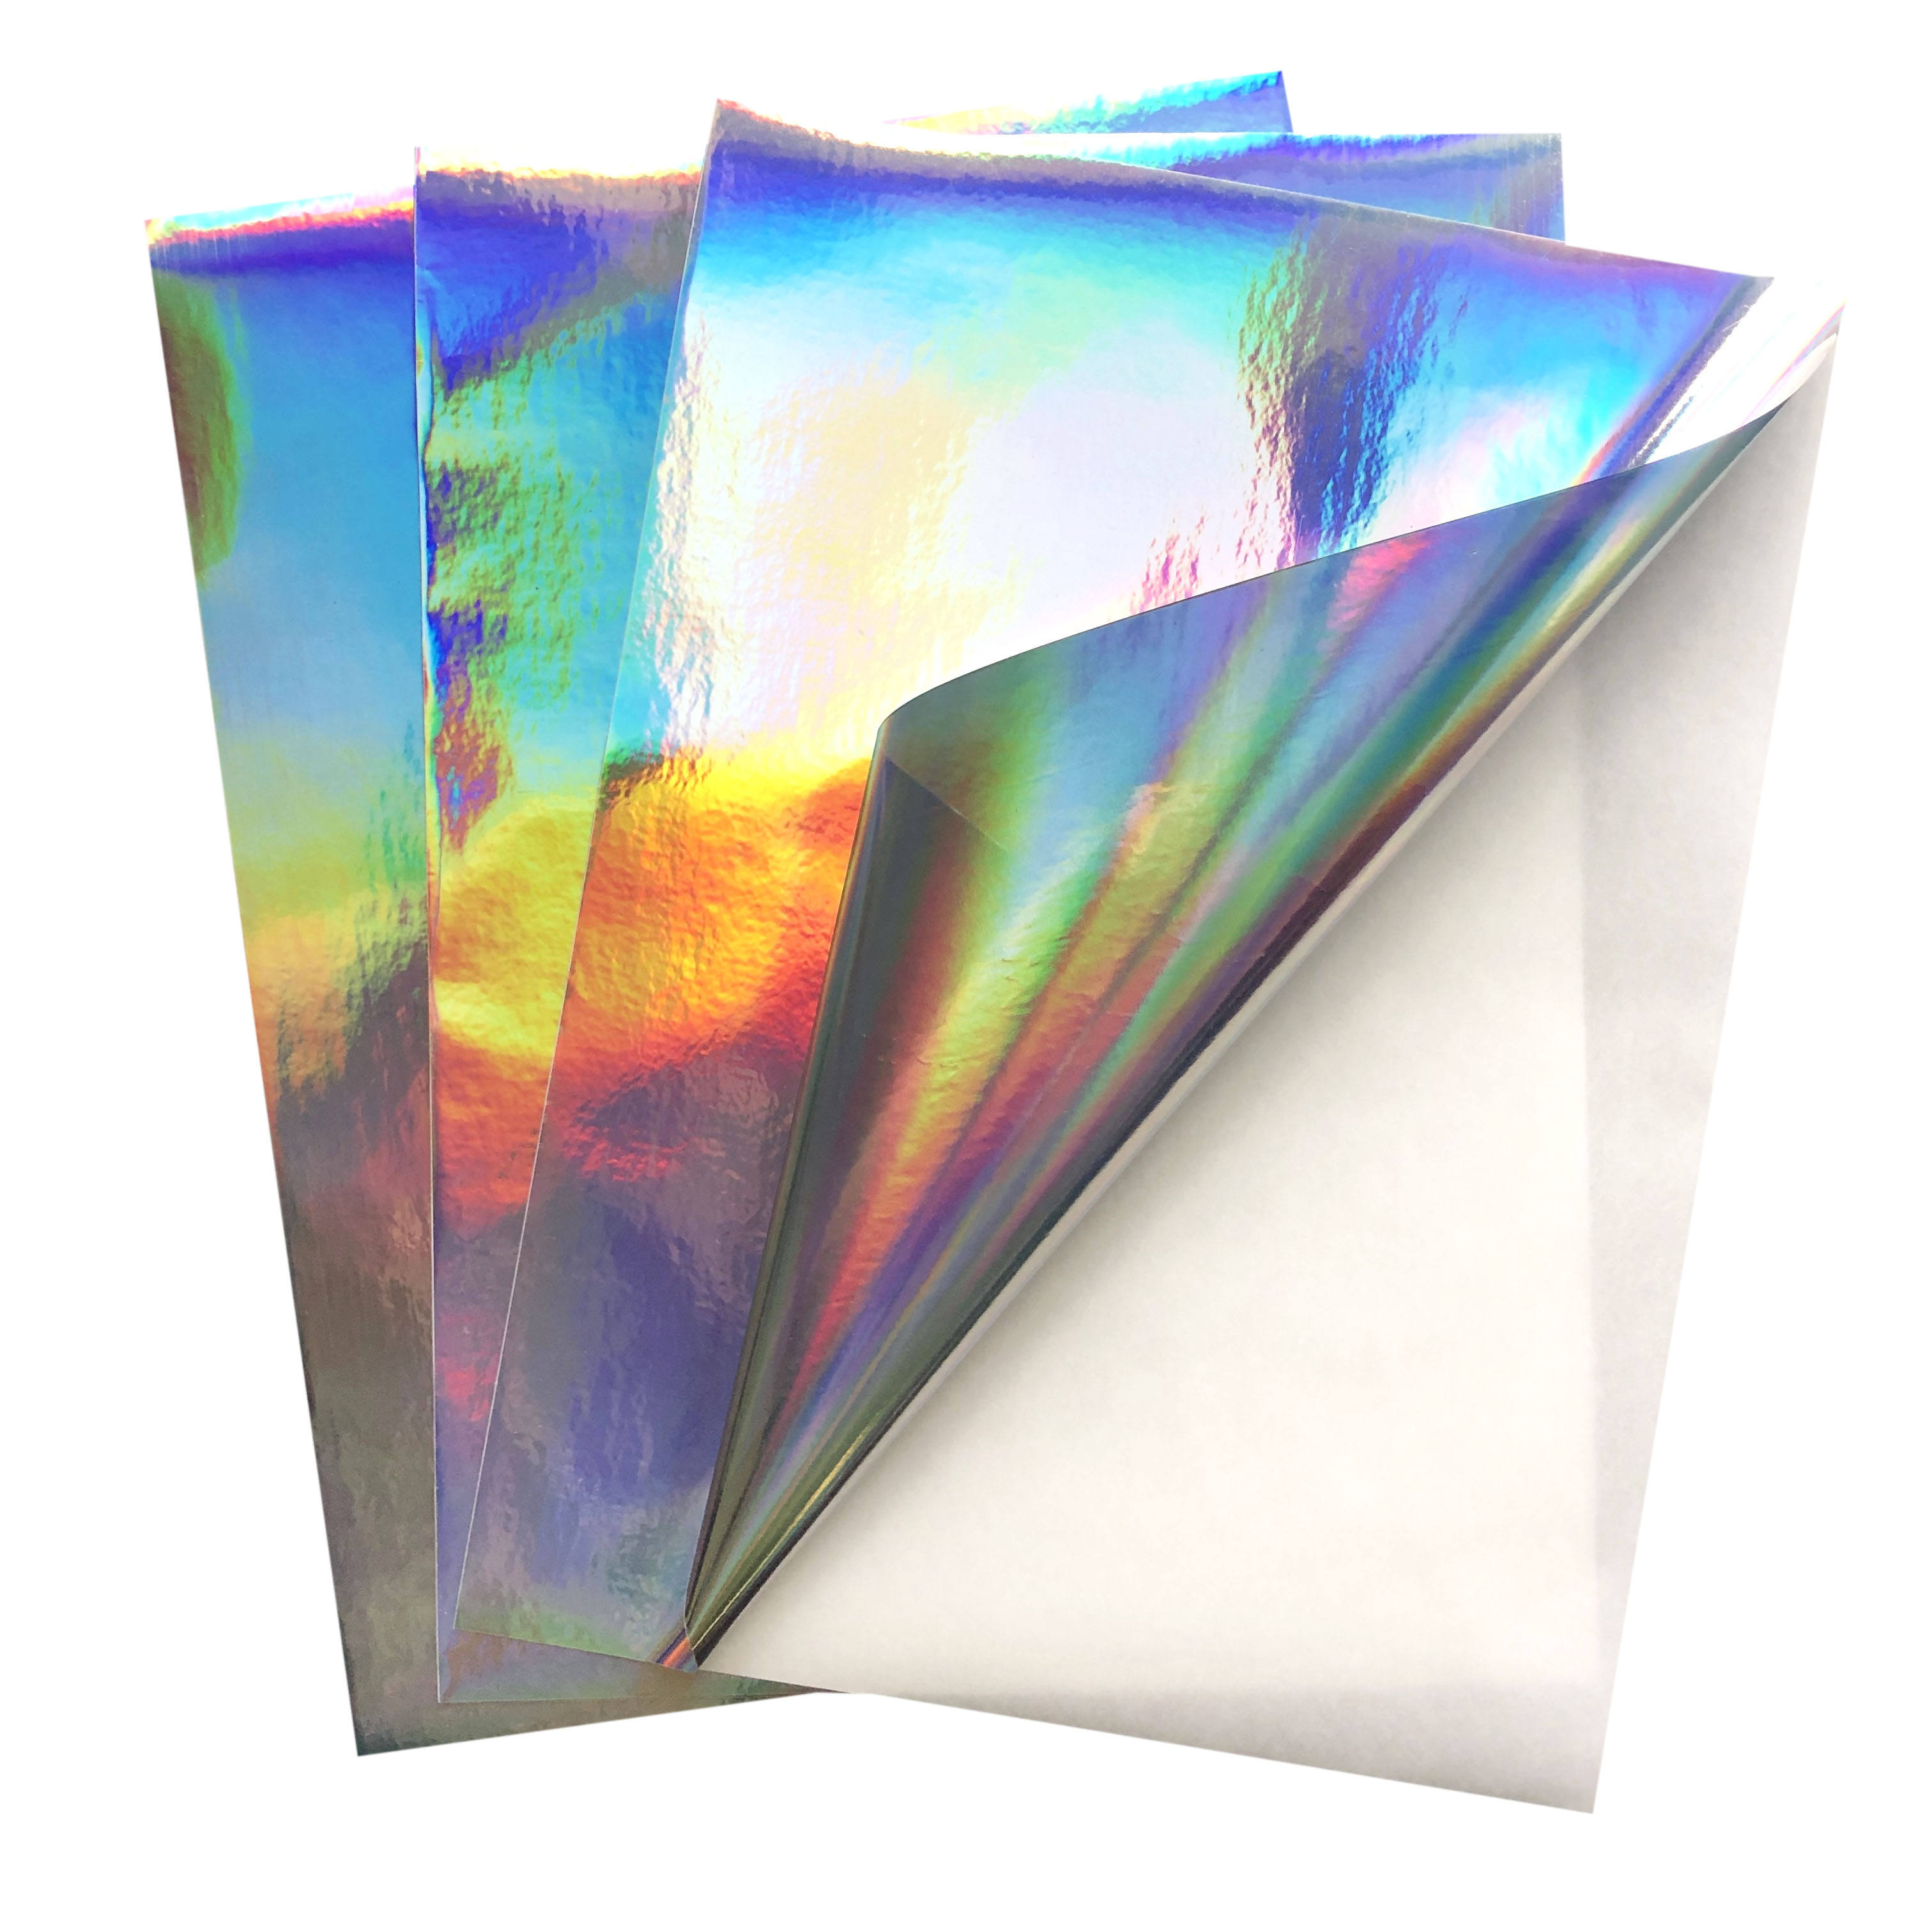 Free Sample Security Holographic PET Film Sticker Paper A4 Vinyl Paper For Printing